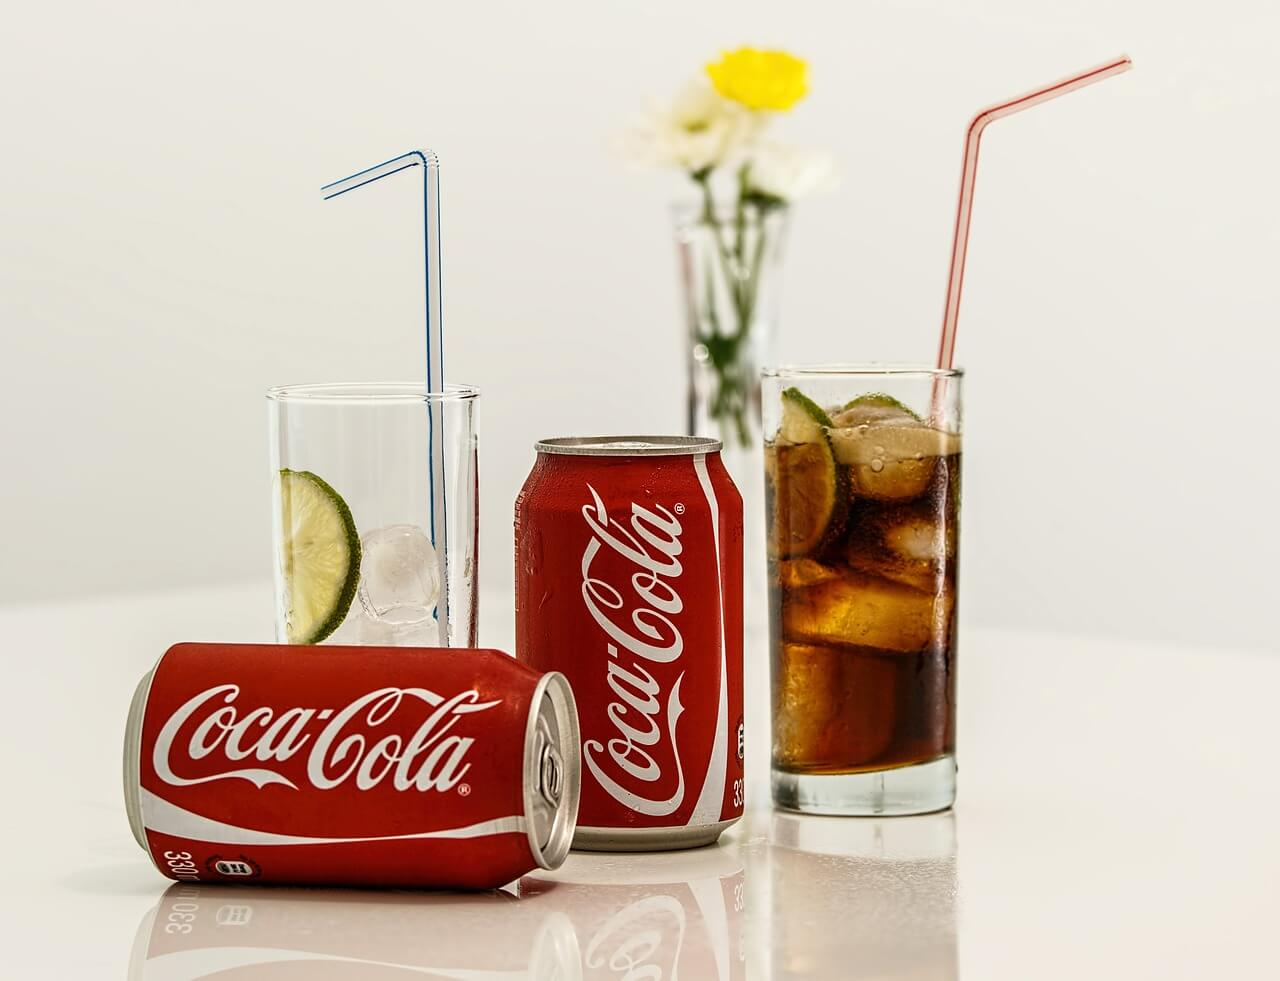 Two cans of coca cola beside two glasses with straws.